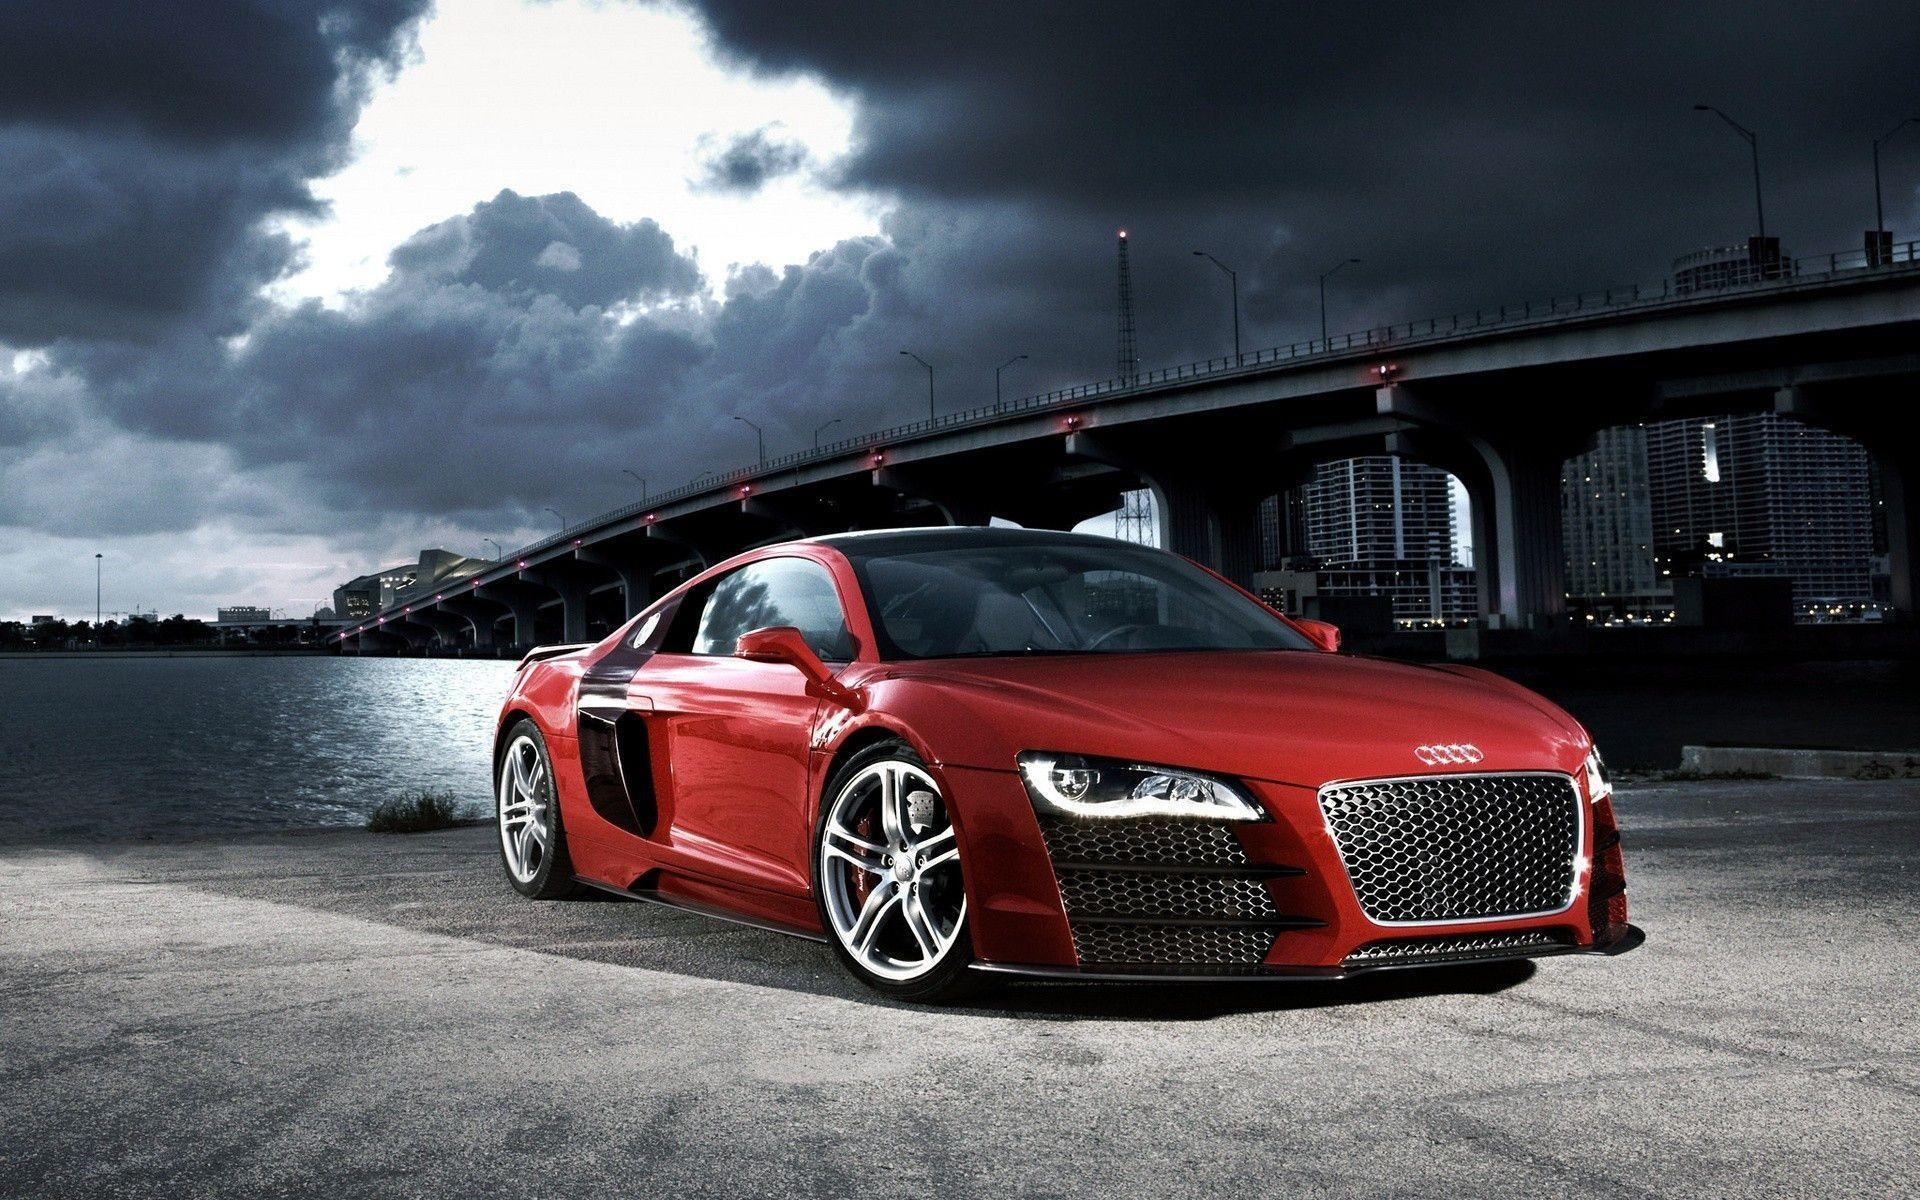 Audi R8 TDI Le Mans Concept Wallpapers | HD Wallpapers